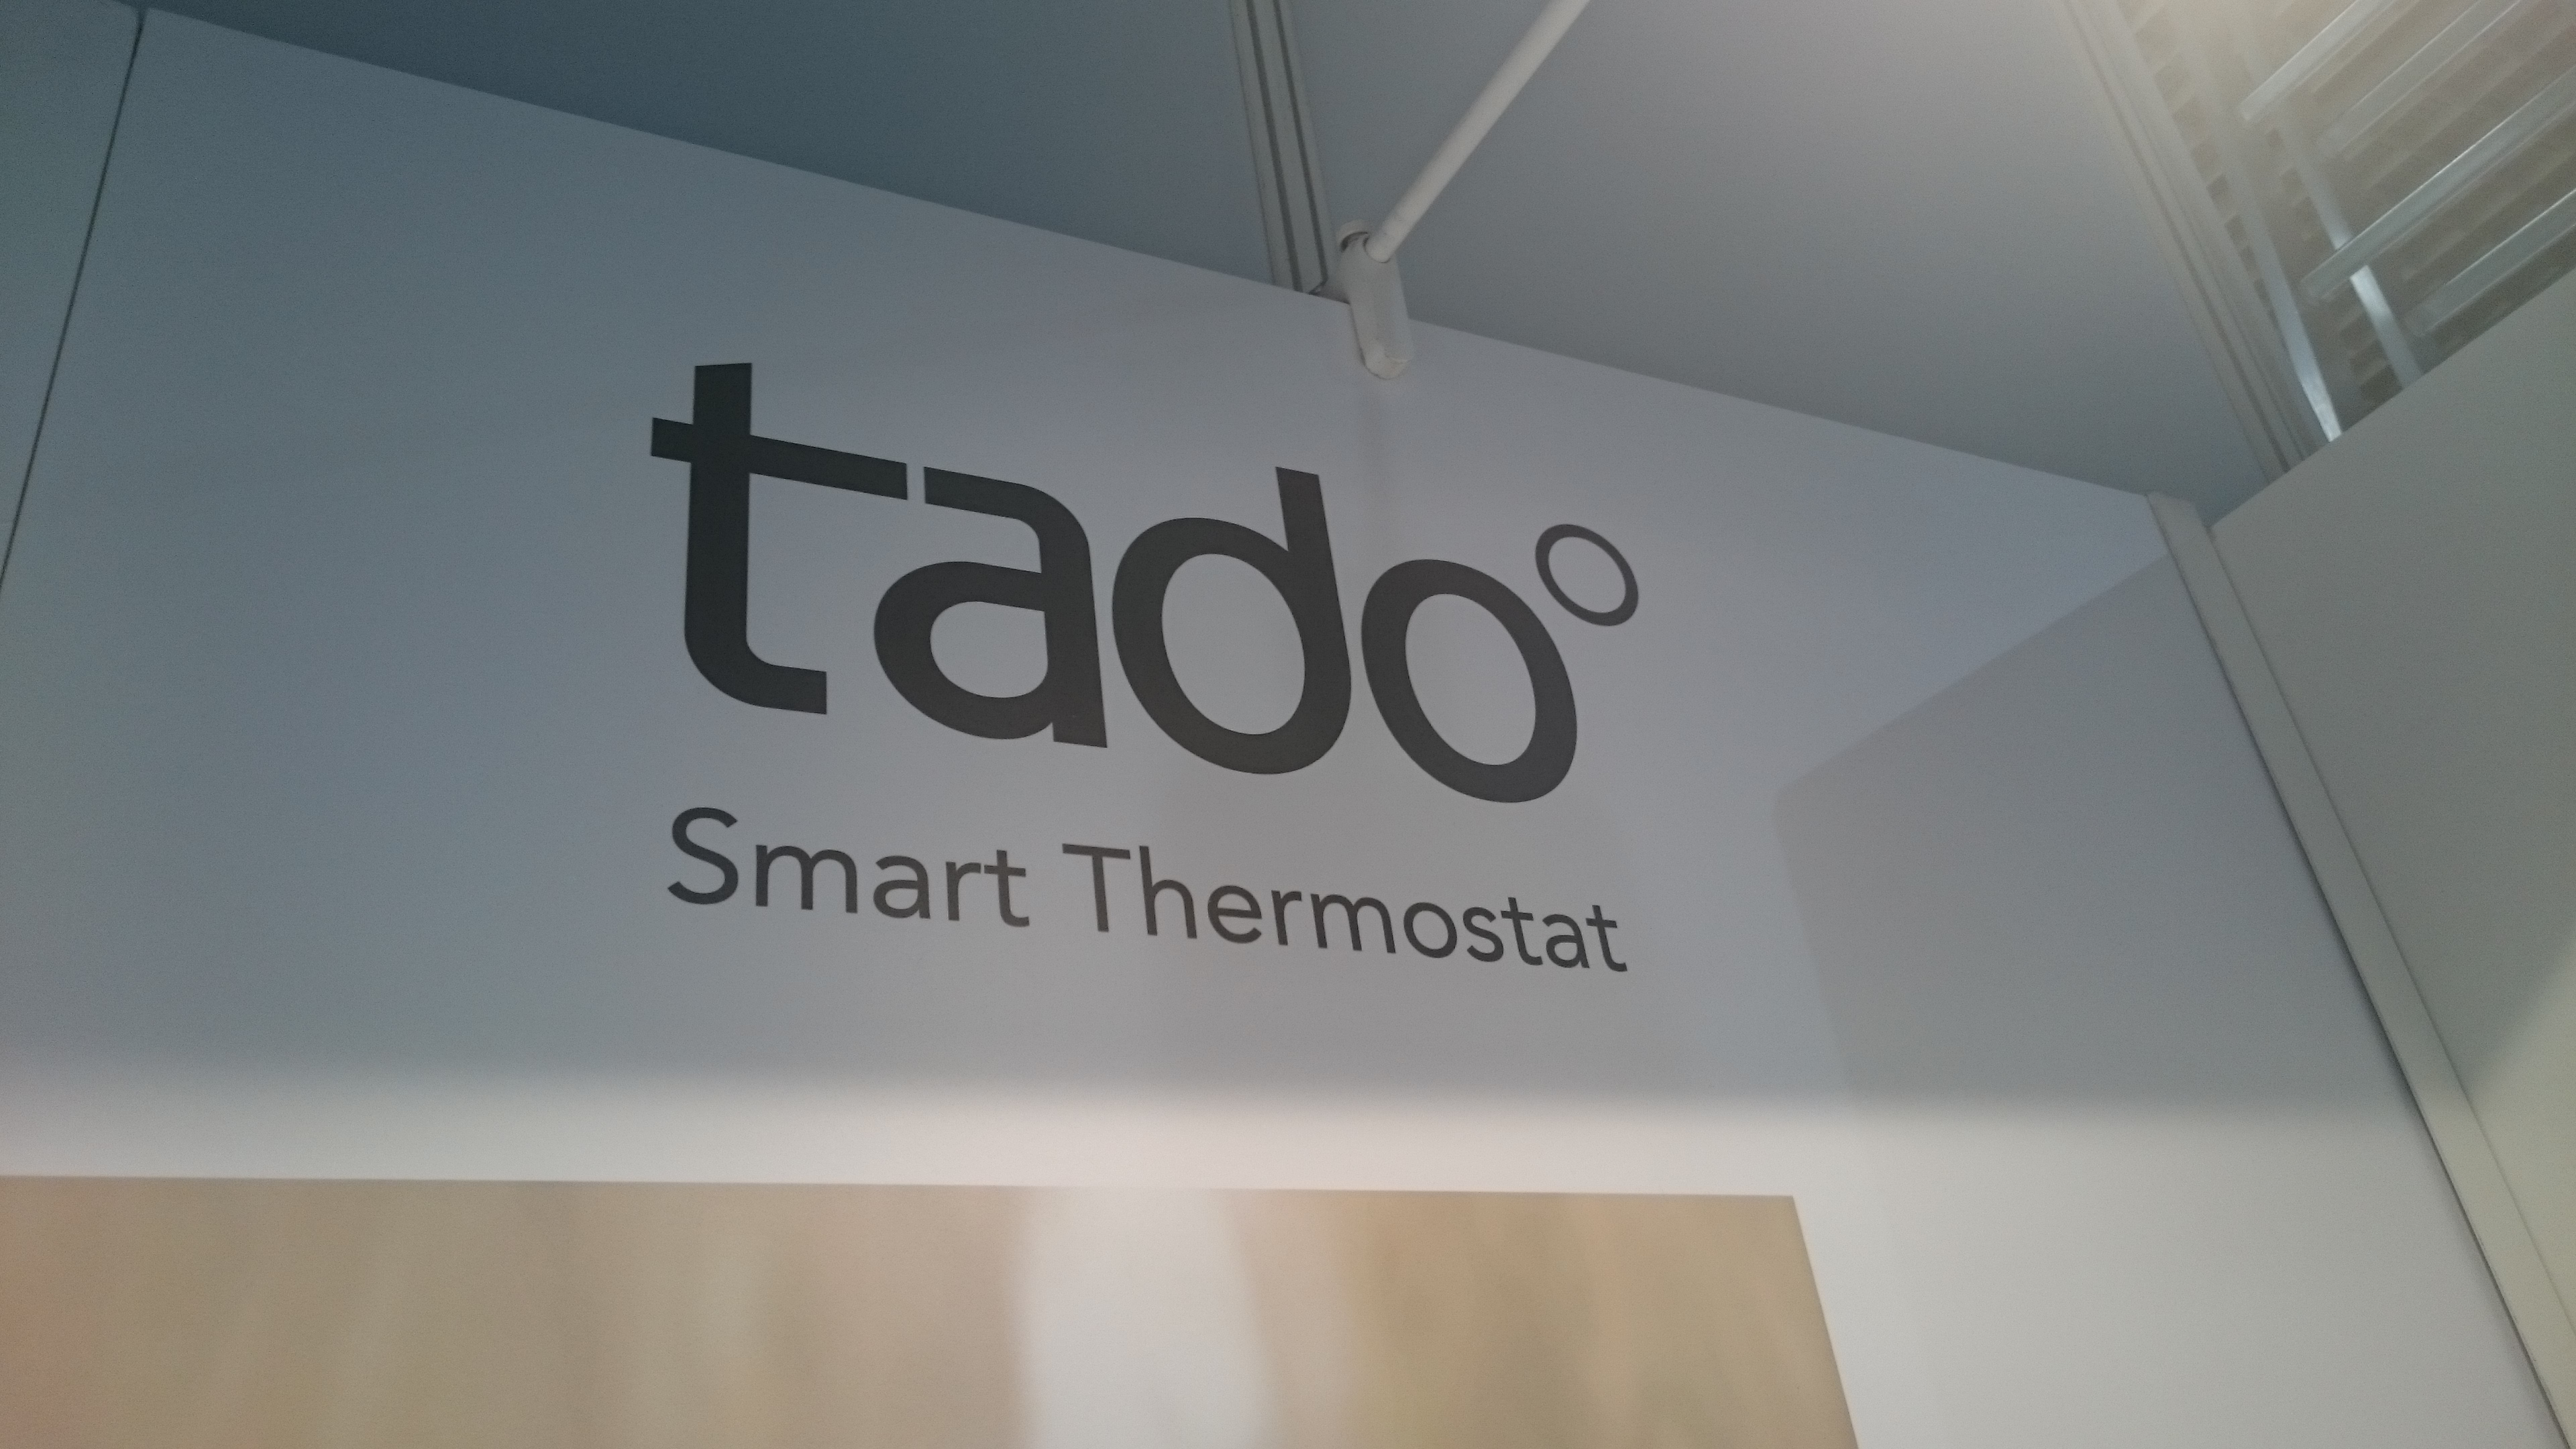 ifa tado smart thermostat coolsmartphone. Black Bedroom Furniture Sets. Home Design Ideas